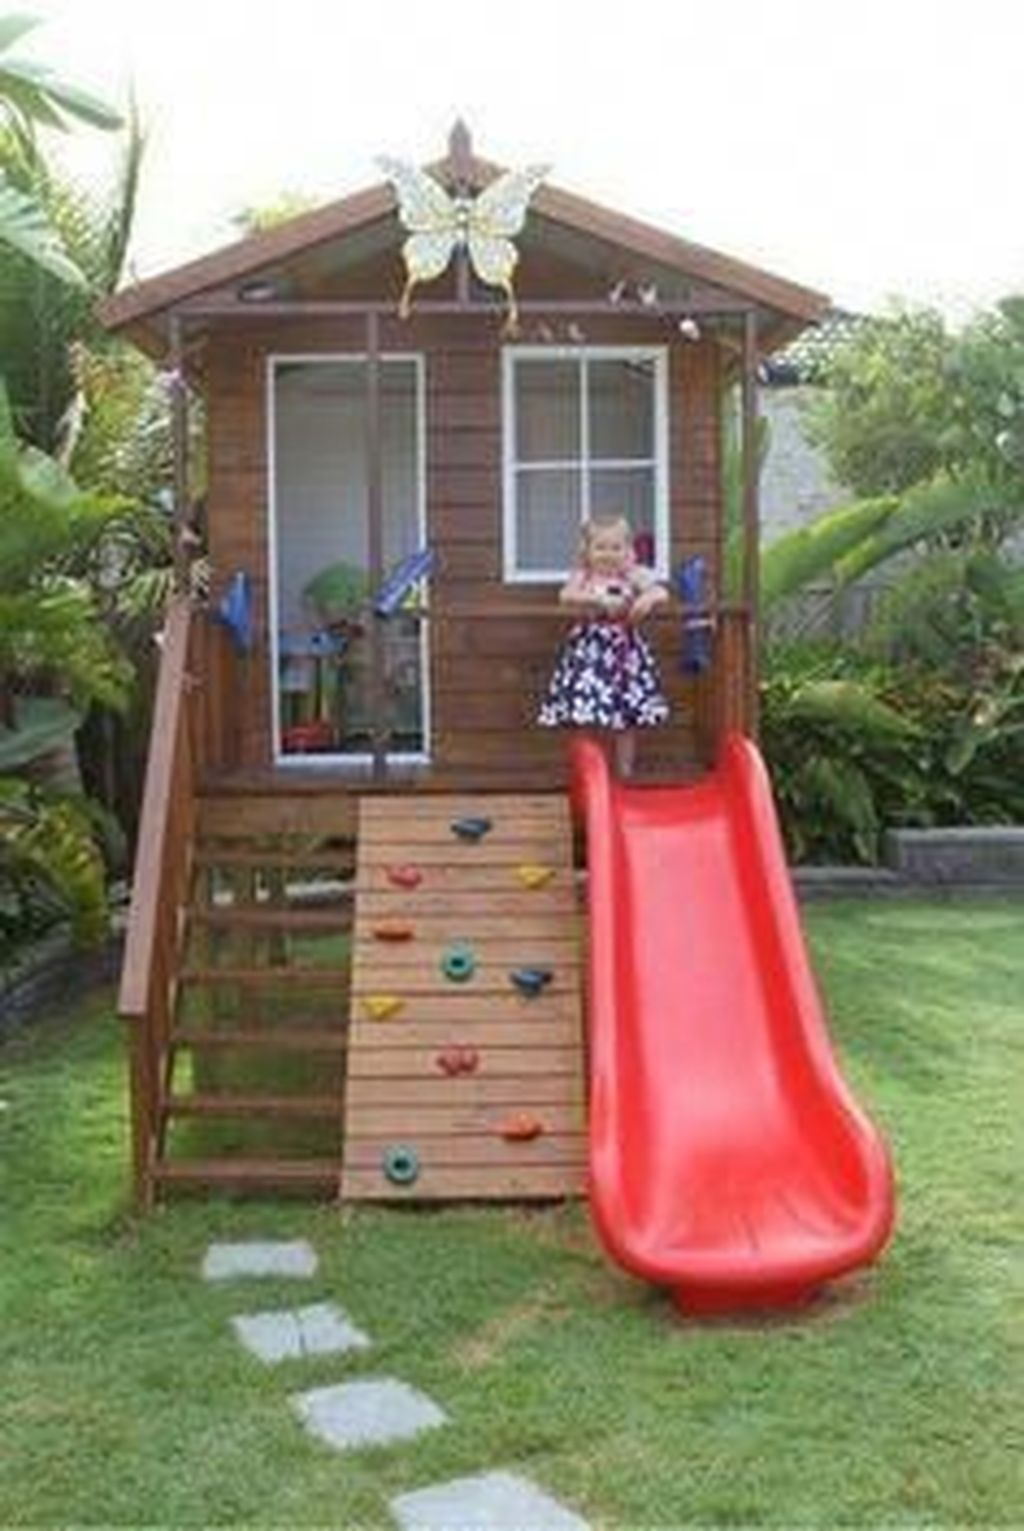 Incredible Magical Backyard Design Ideas For Your Kids 24